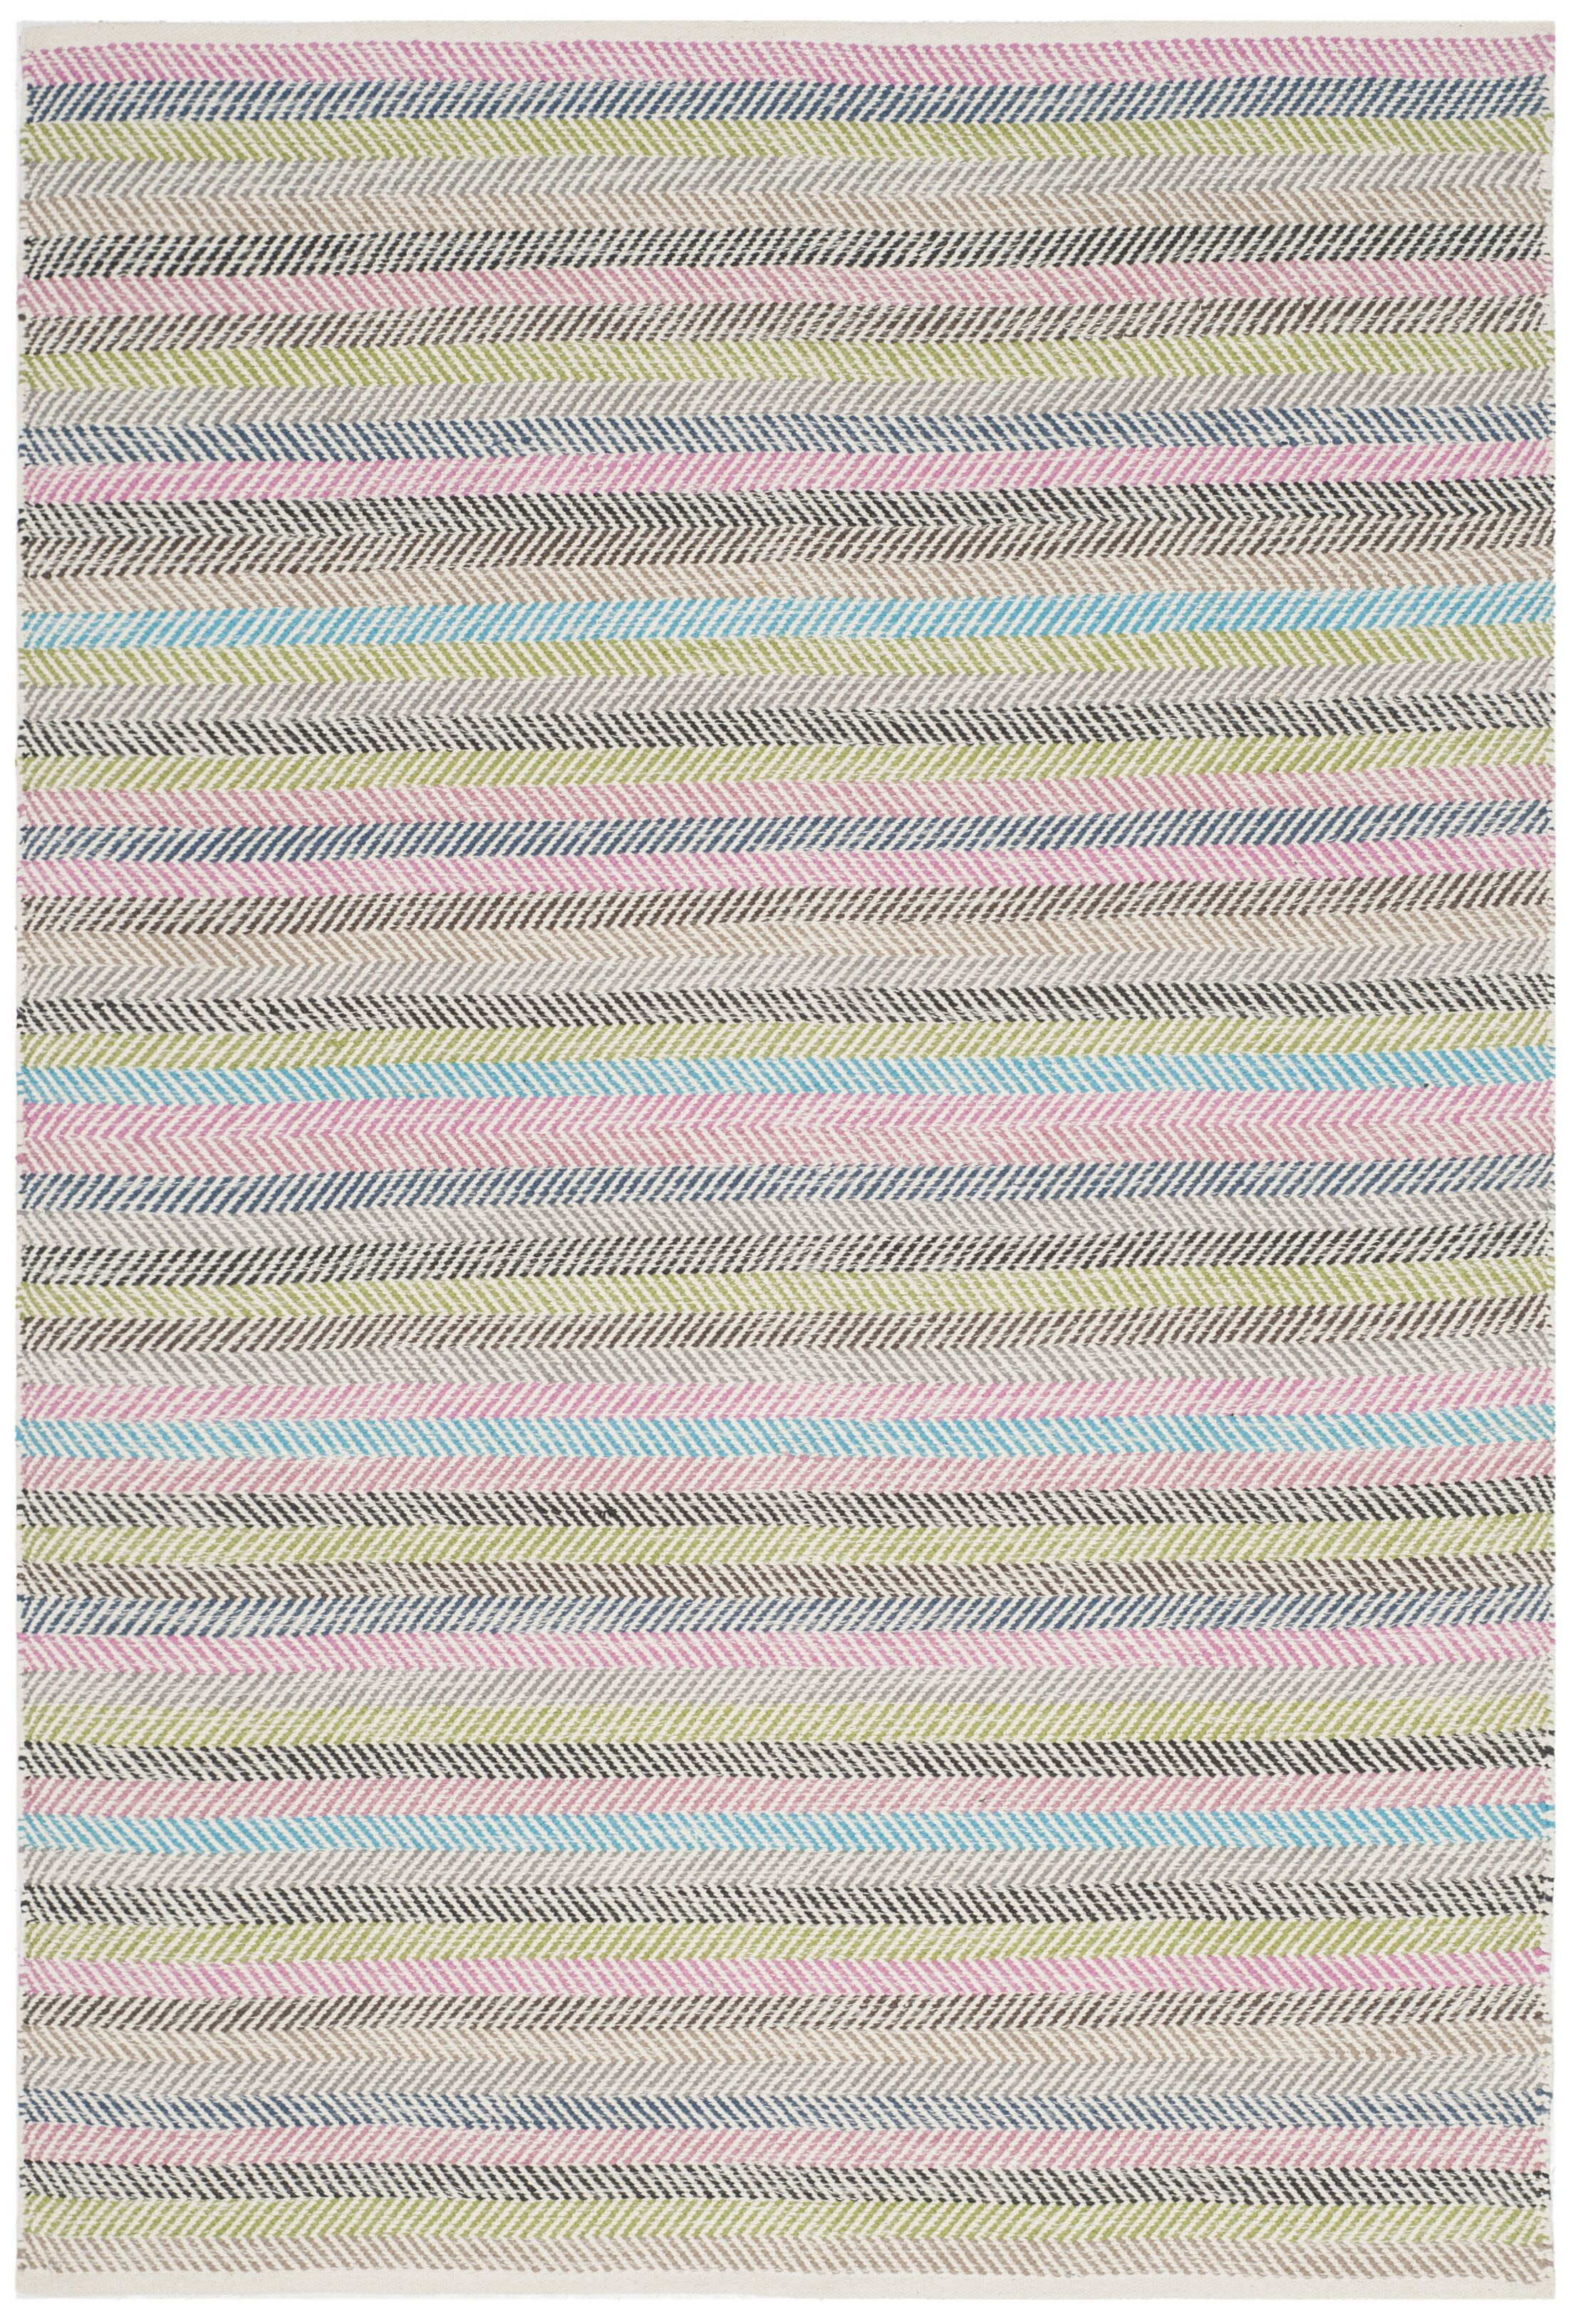 Sardis Hand-Woven Light Gray Area Rug Rug Size: Rectangle 4' x 6'